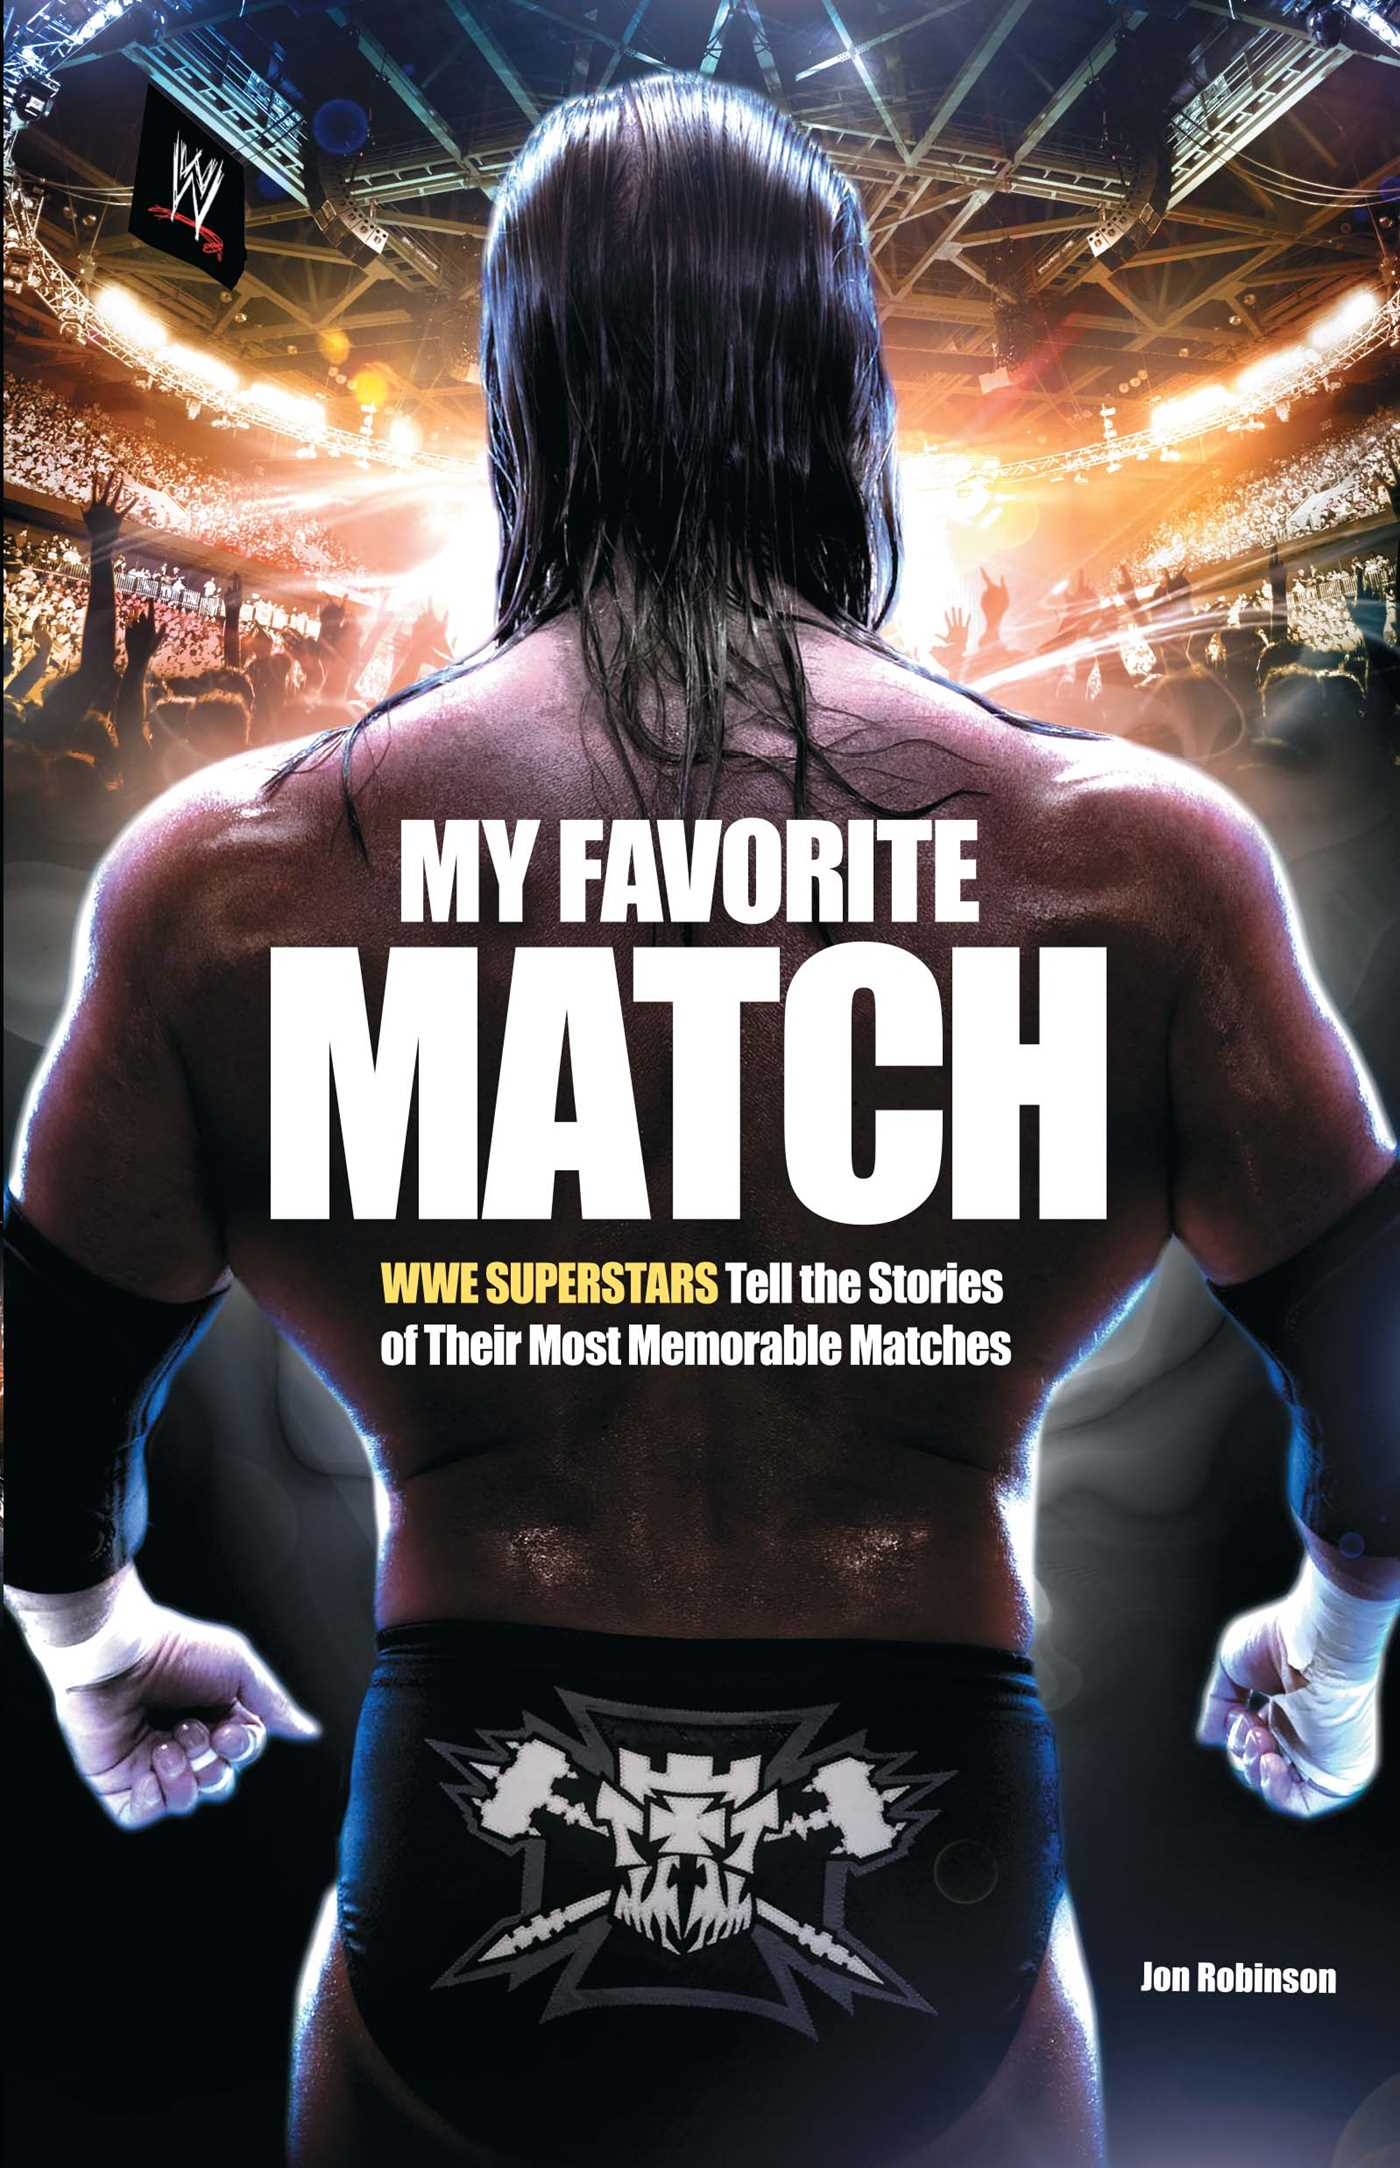 My-favorite-match-9781451631760_hr